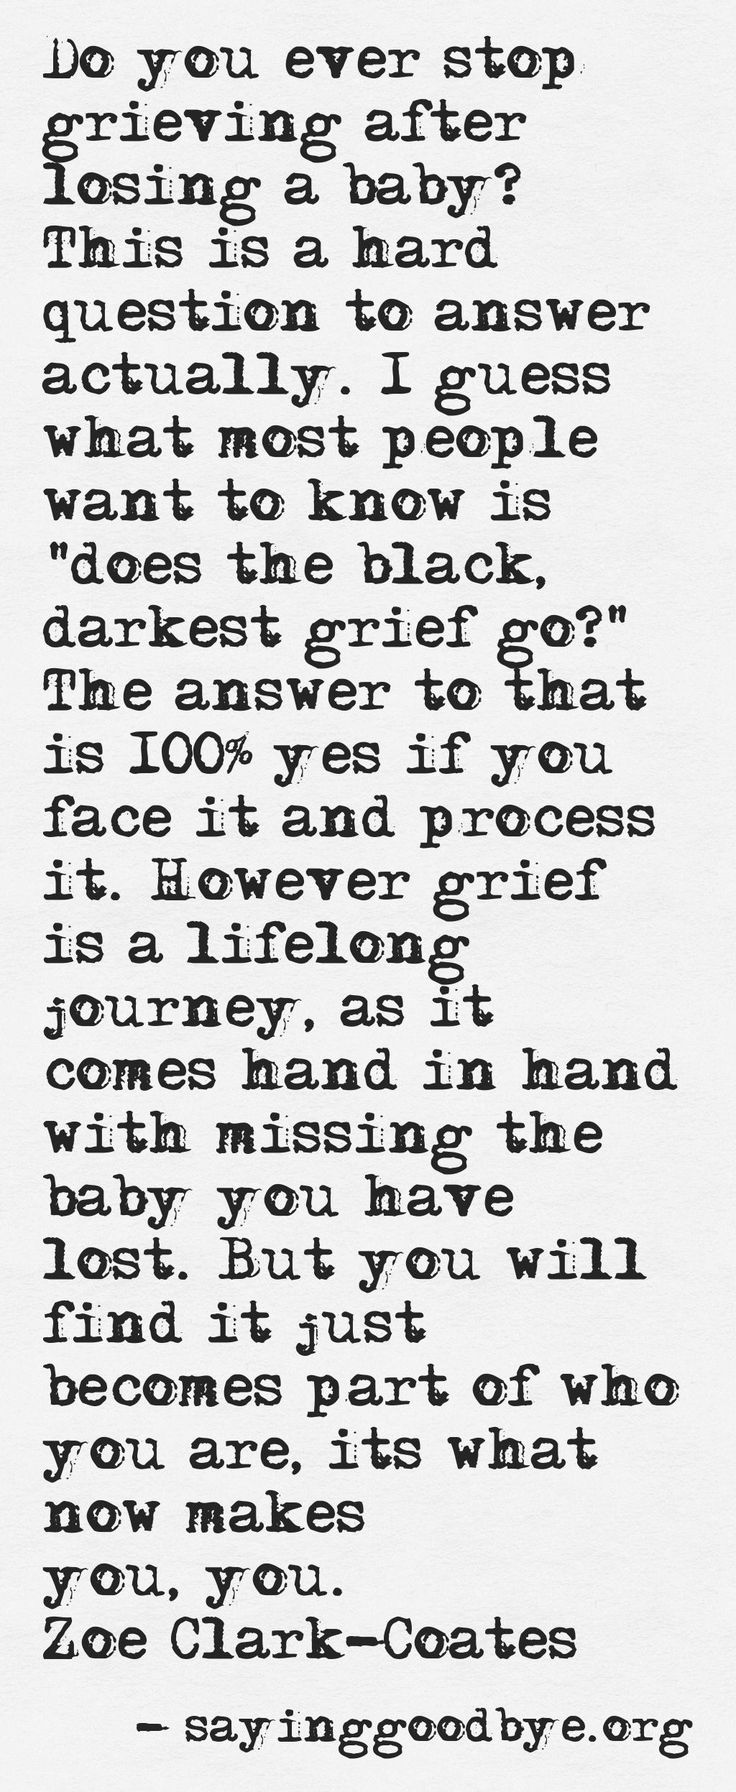 #Babyloss #Miscarriage #Stillbirth #Tears #Loss #Grief #Trauma #Missing #Quotes #ZoeClarkCoates #SayingGoodbye